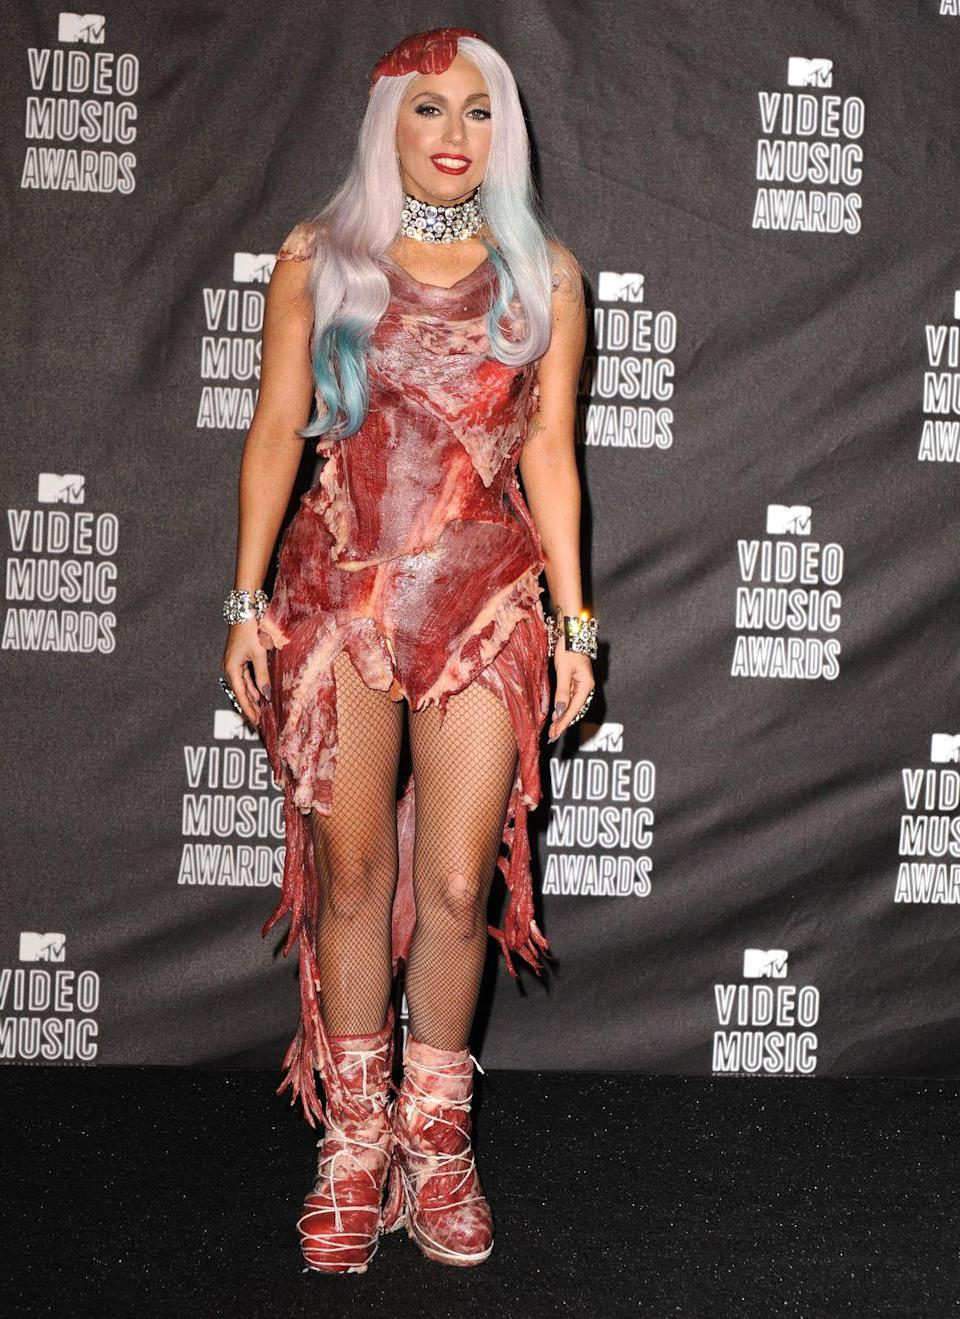 """<p>Lady Gaga has always been known for her outlandish style choices. But there was one dress that was especially controversial: The meat dress she wore to the 2010 MTV Video Music Awards. In an <a href=""""http://www.mtv.com/news/2579536/lady-gaga-meat-dress-peta/"""" rel=""""nofollow noopener"""" target=""""_blank"""" data-ylk=""""slk:interview"""" class=""""link rapid-noclick-resp"""">interview</a>, Lady Gaga explained, """"It has many interpretations, but for me this evening ... If we don't stand up for what we believe in and if we don't fight for our rights, pretty soon we're going to have as much rights as the meat on our own bones. And I am not a piece of meat."""" </p>"""